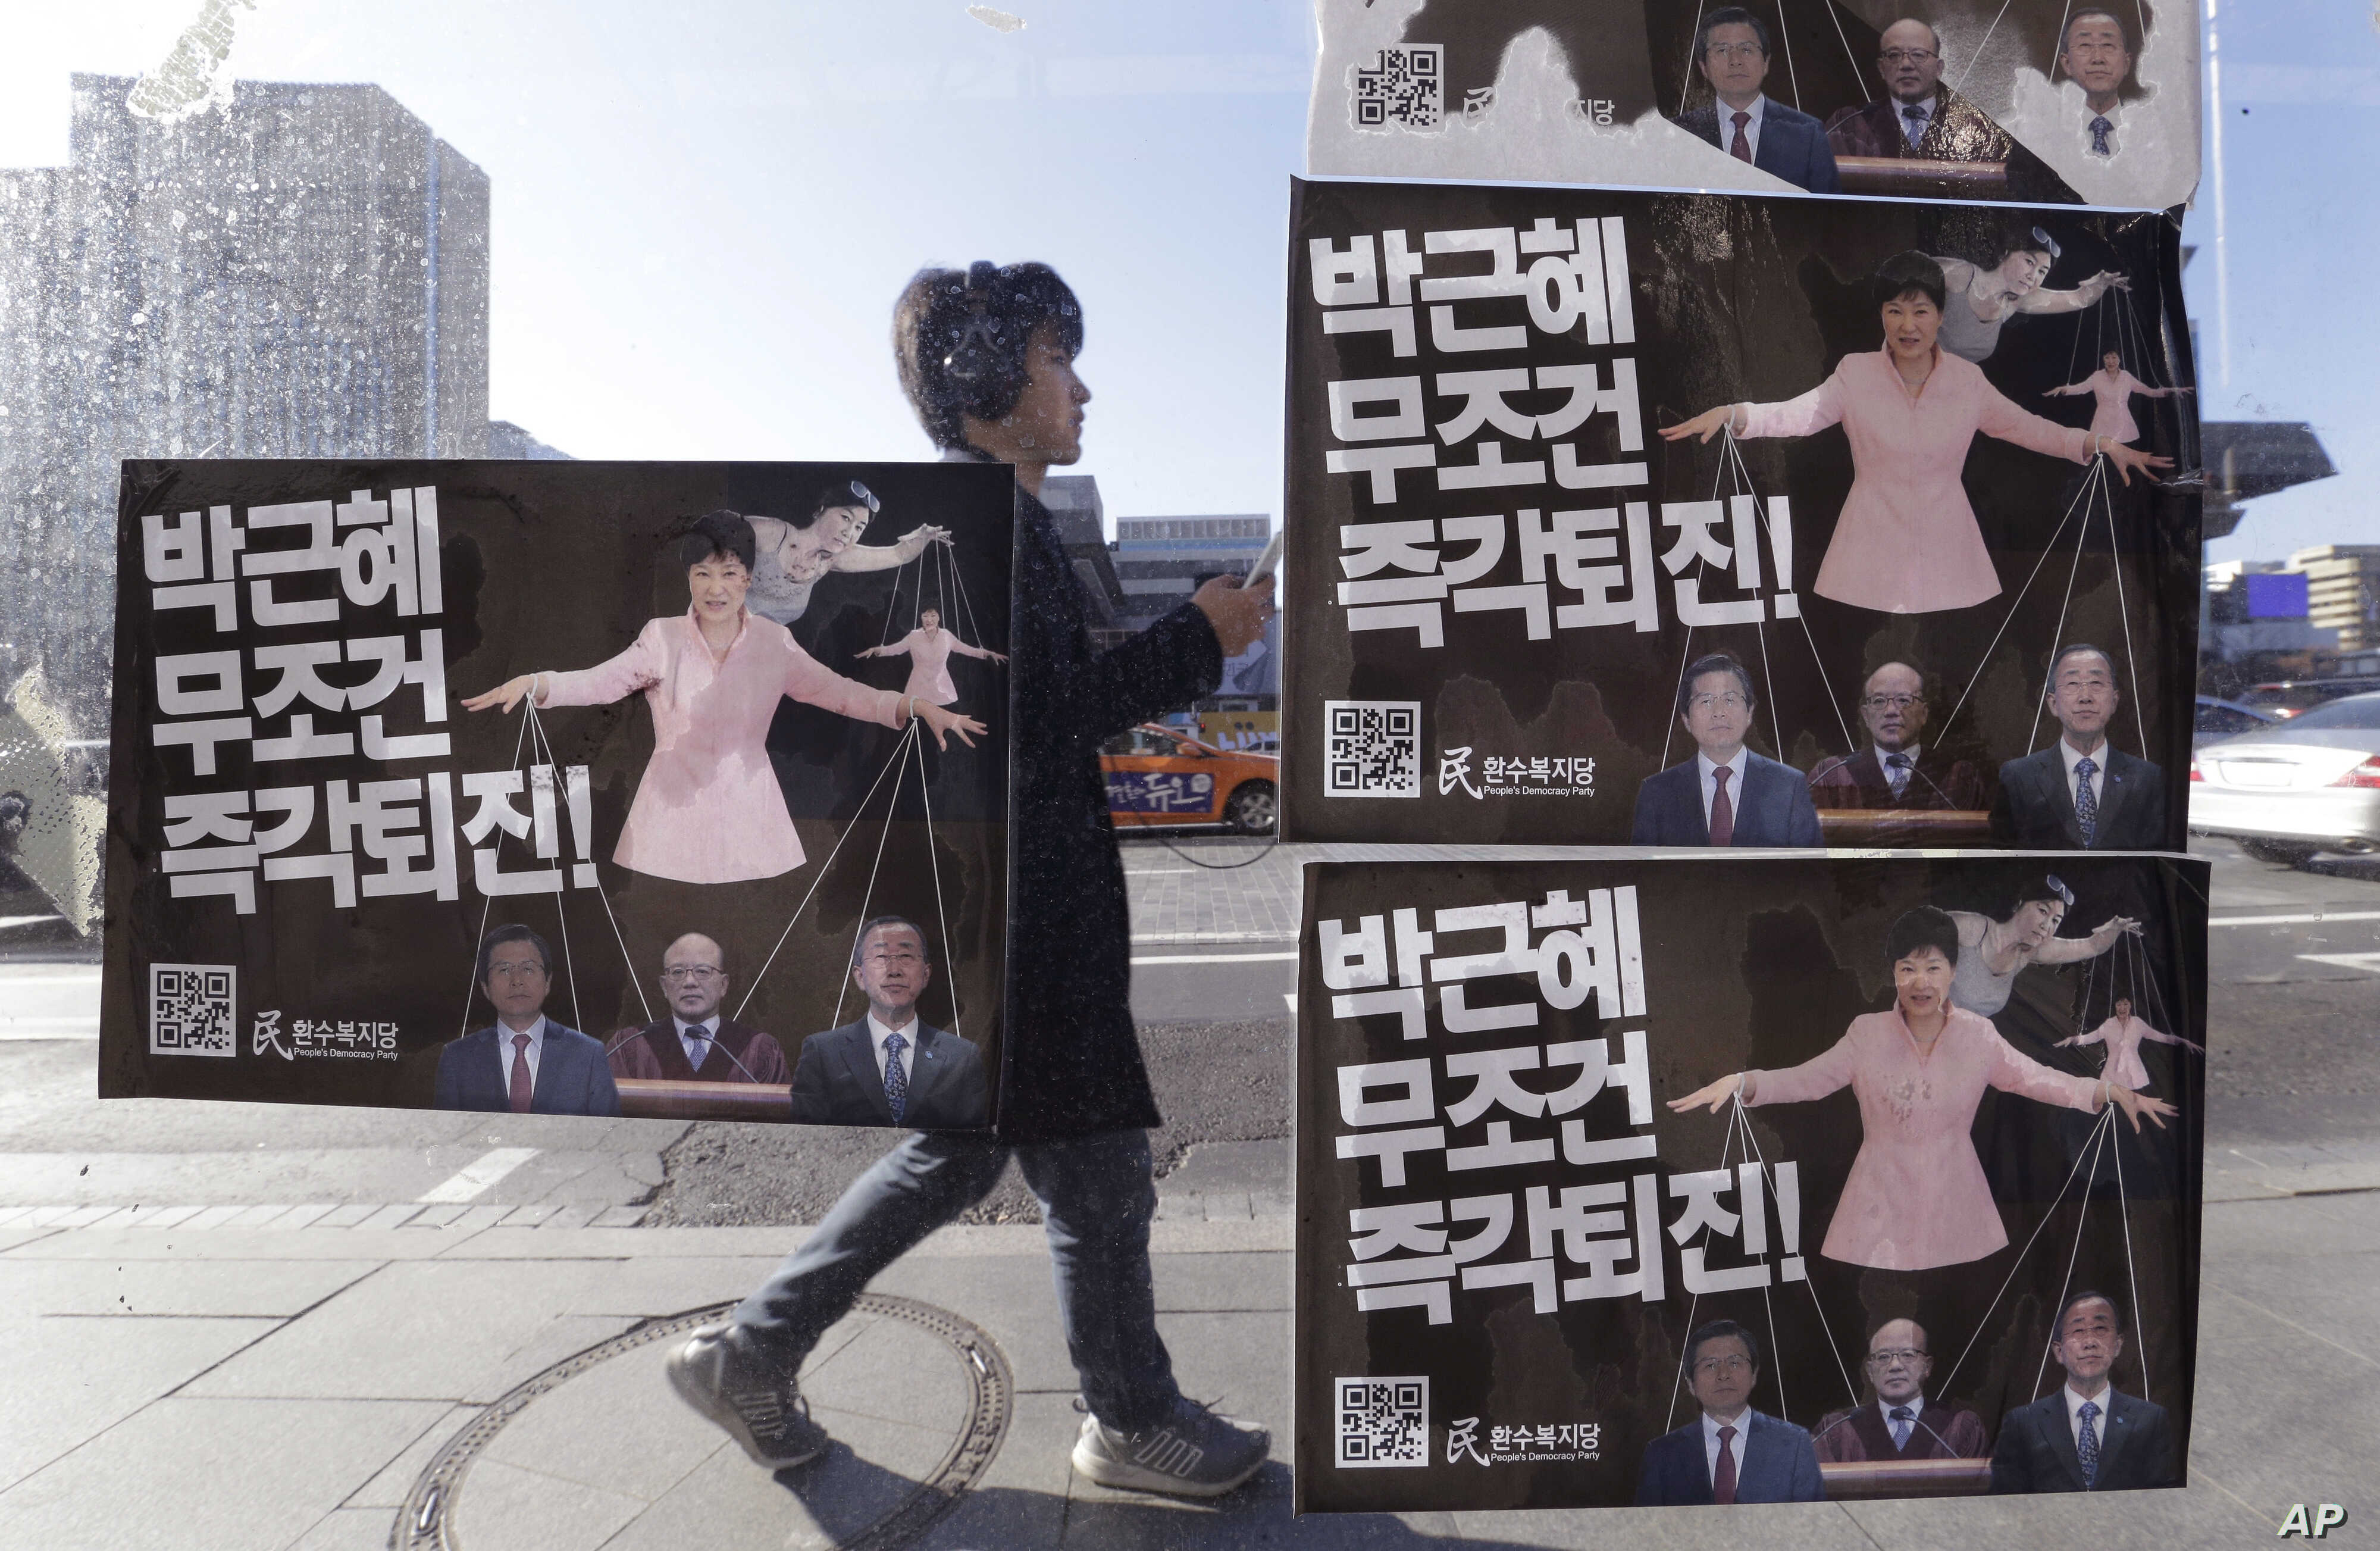 A man walks by a bus stop displayed with posters depicting impeached South Korea's President Park Geun-hye in pink manipulating three of her aides while she is also manipulated as a marionette by her jailed confidante Choi Soon-sil, seen above Park's...